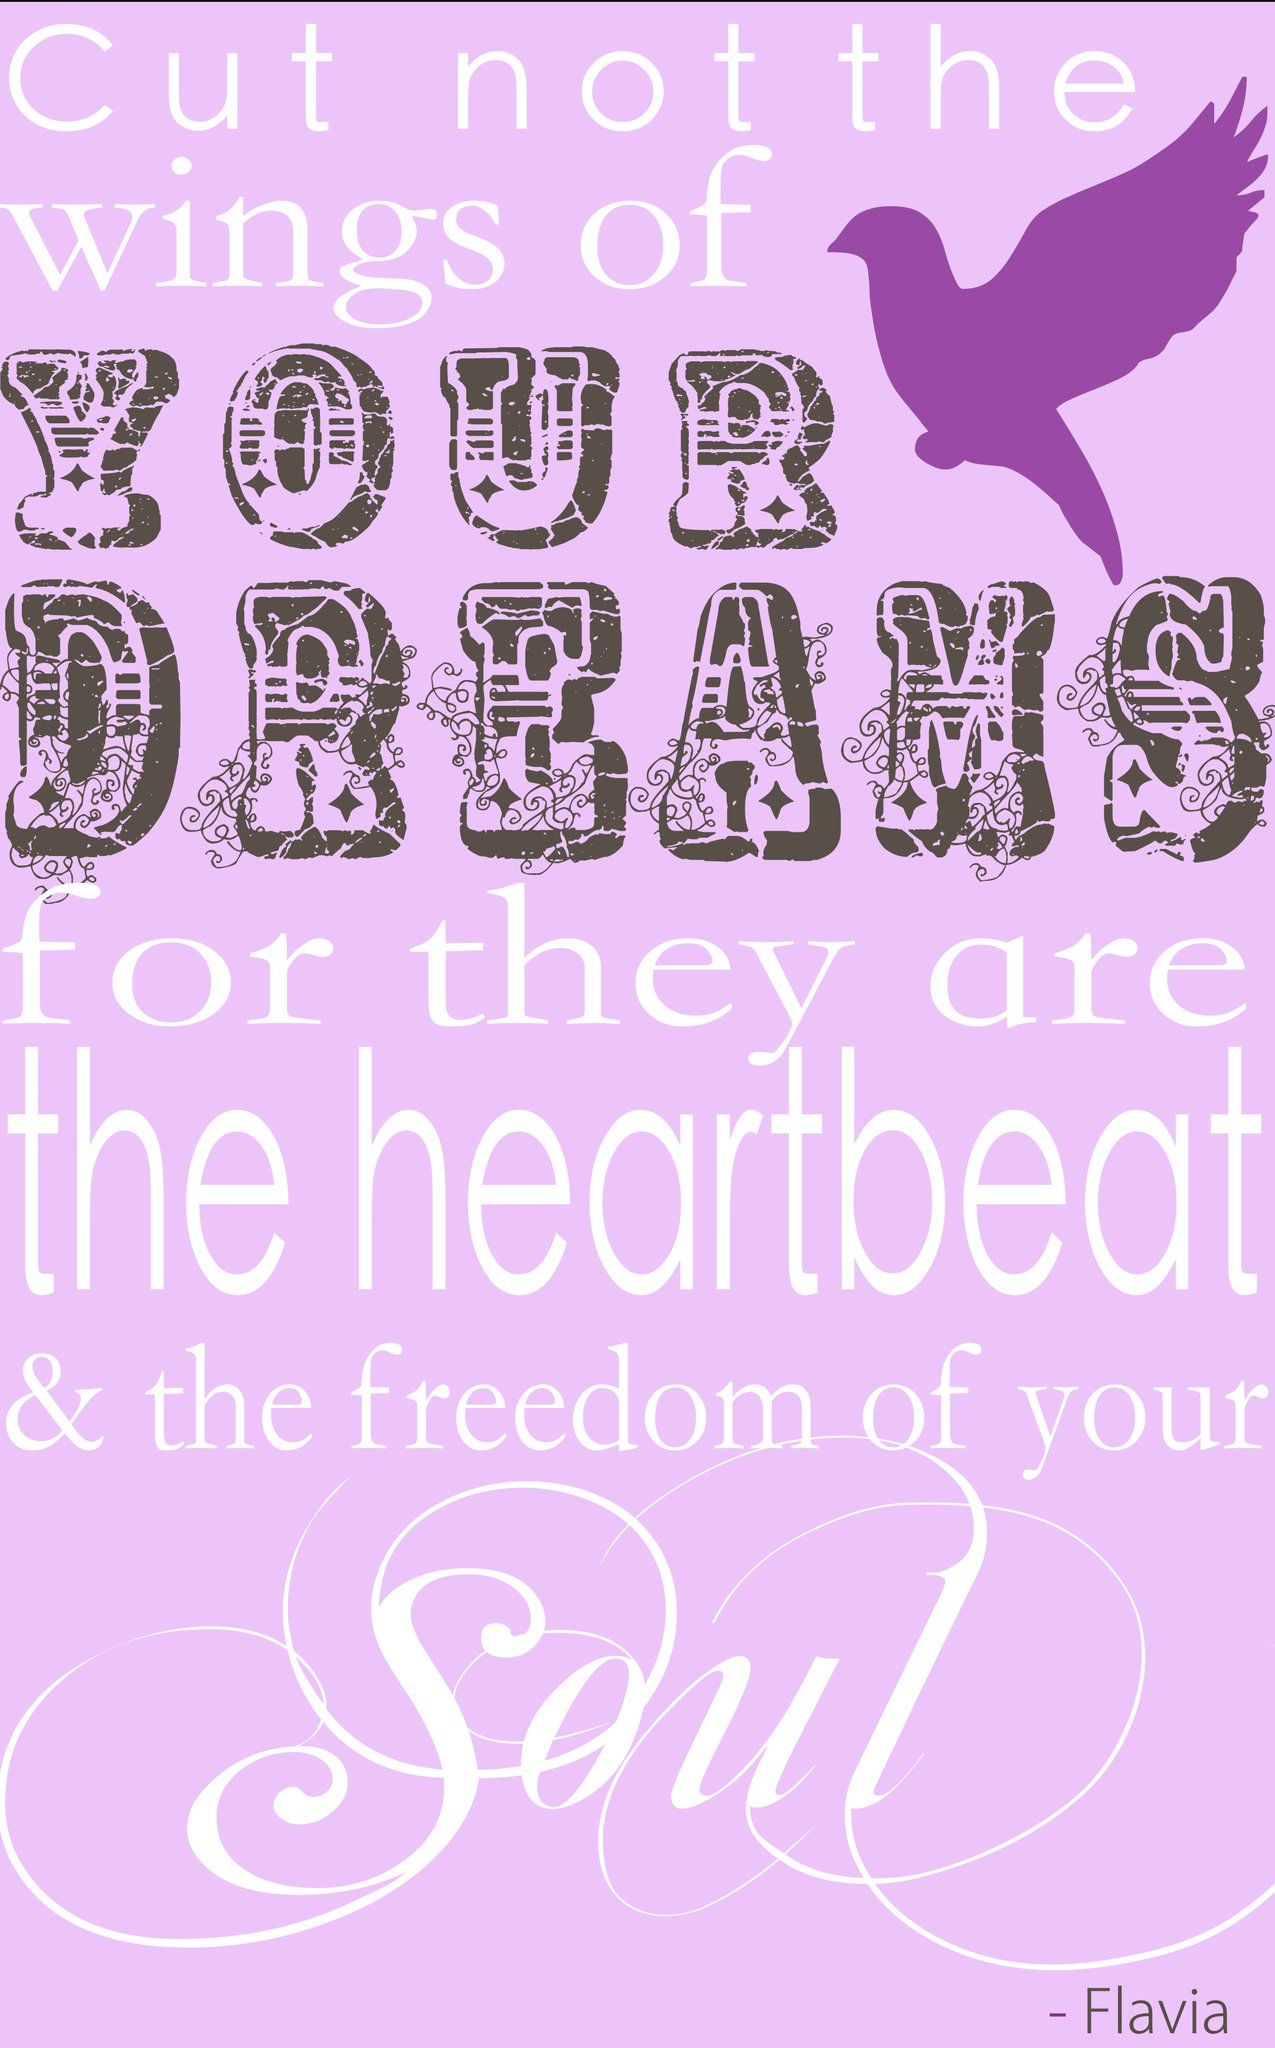 ...Cut not the wings of your dreams...